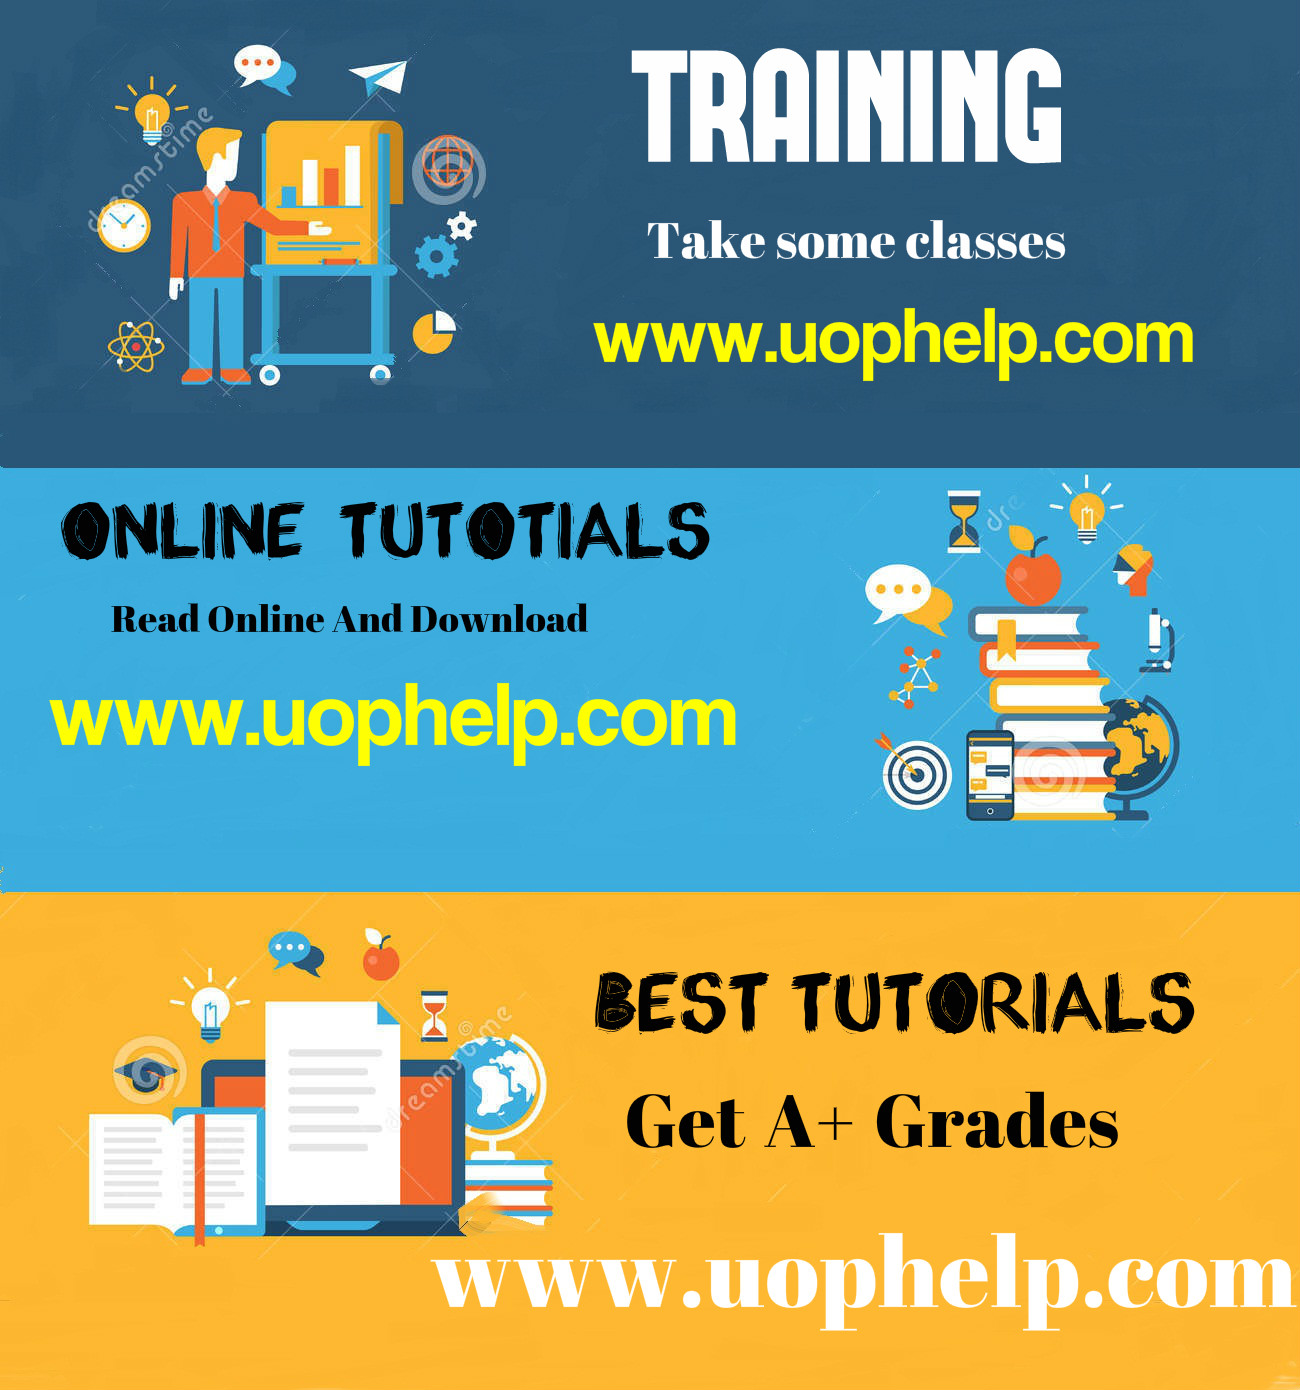 phi entire expert tutor uophelp on emaze give an explanation of why each makes a mistake in drawing the conclusion it does review your classmates examples and see if they in fact